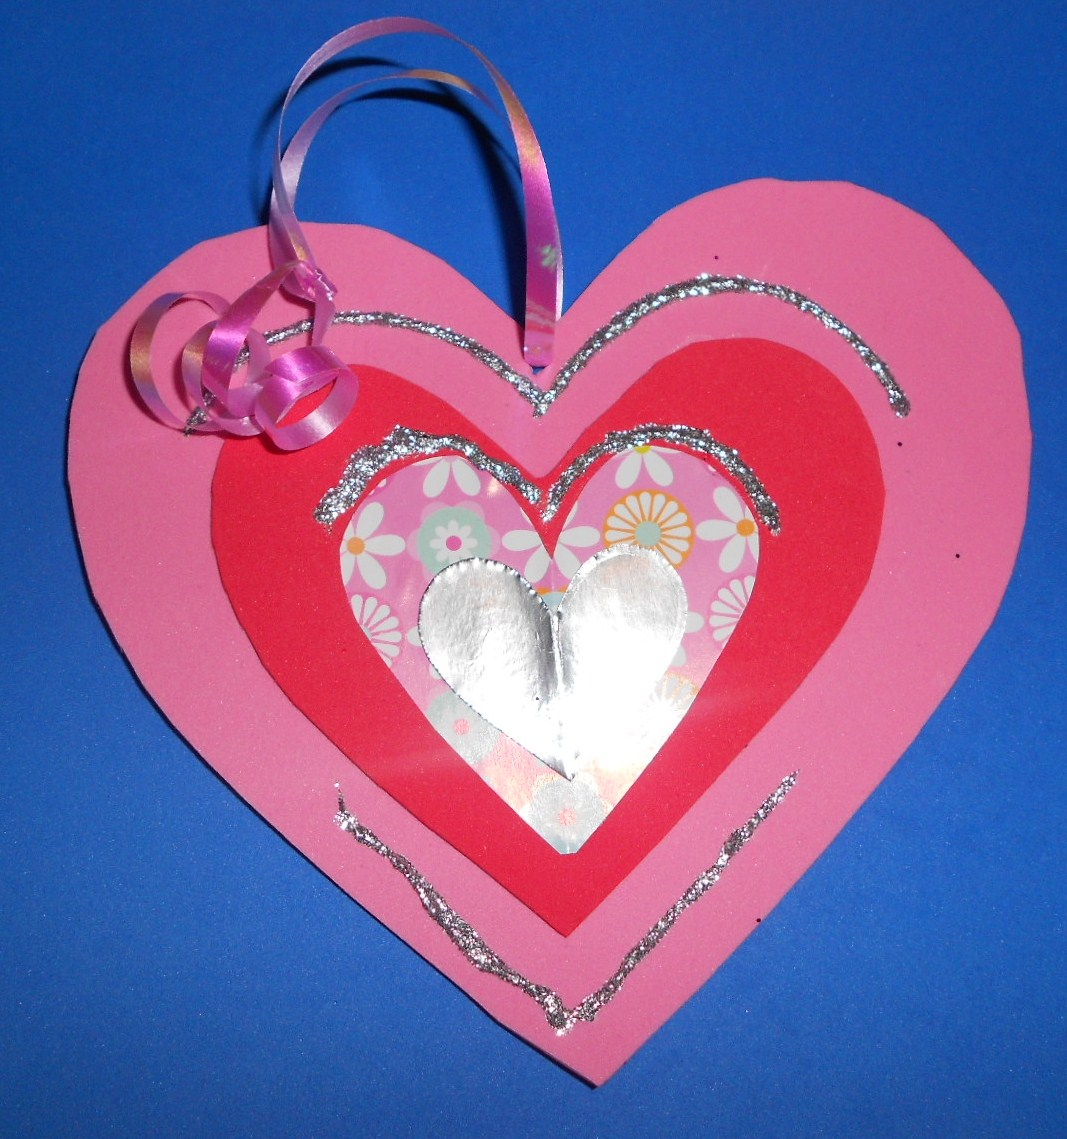 James may arts and crafts blog valentine 39 s day craft page for Valentines day art and crafts for preschoolers